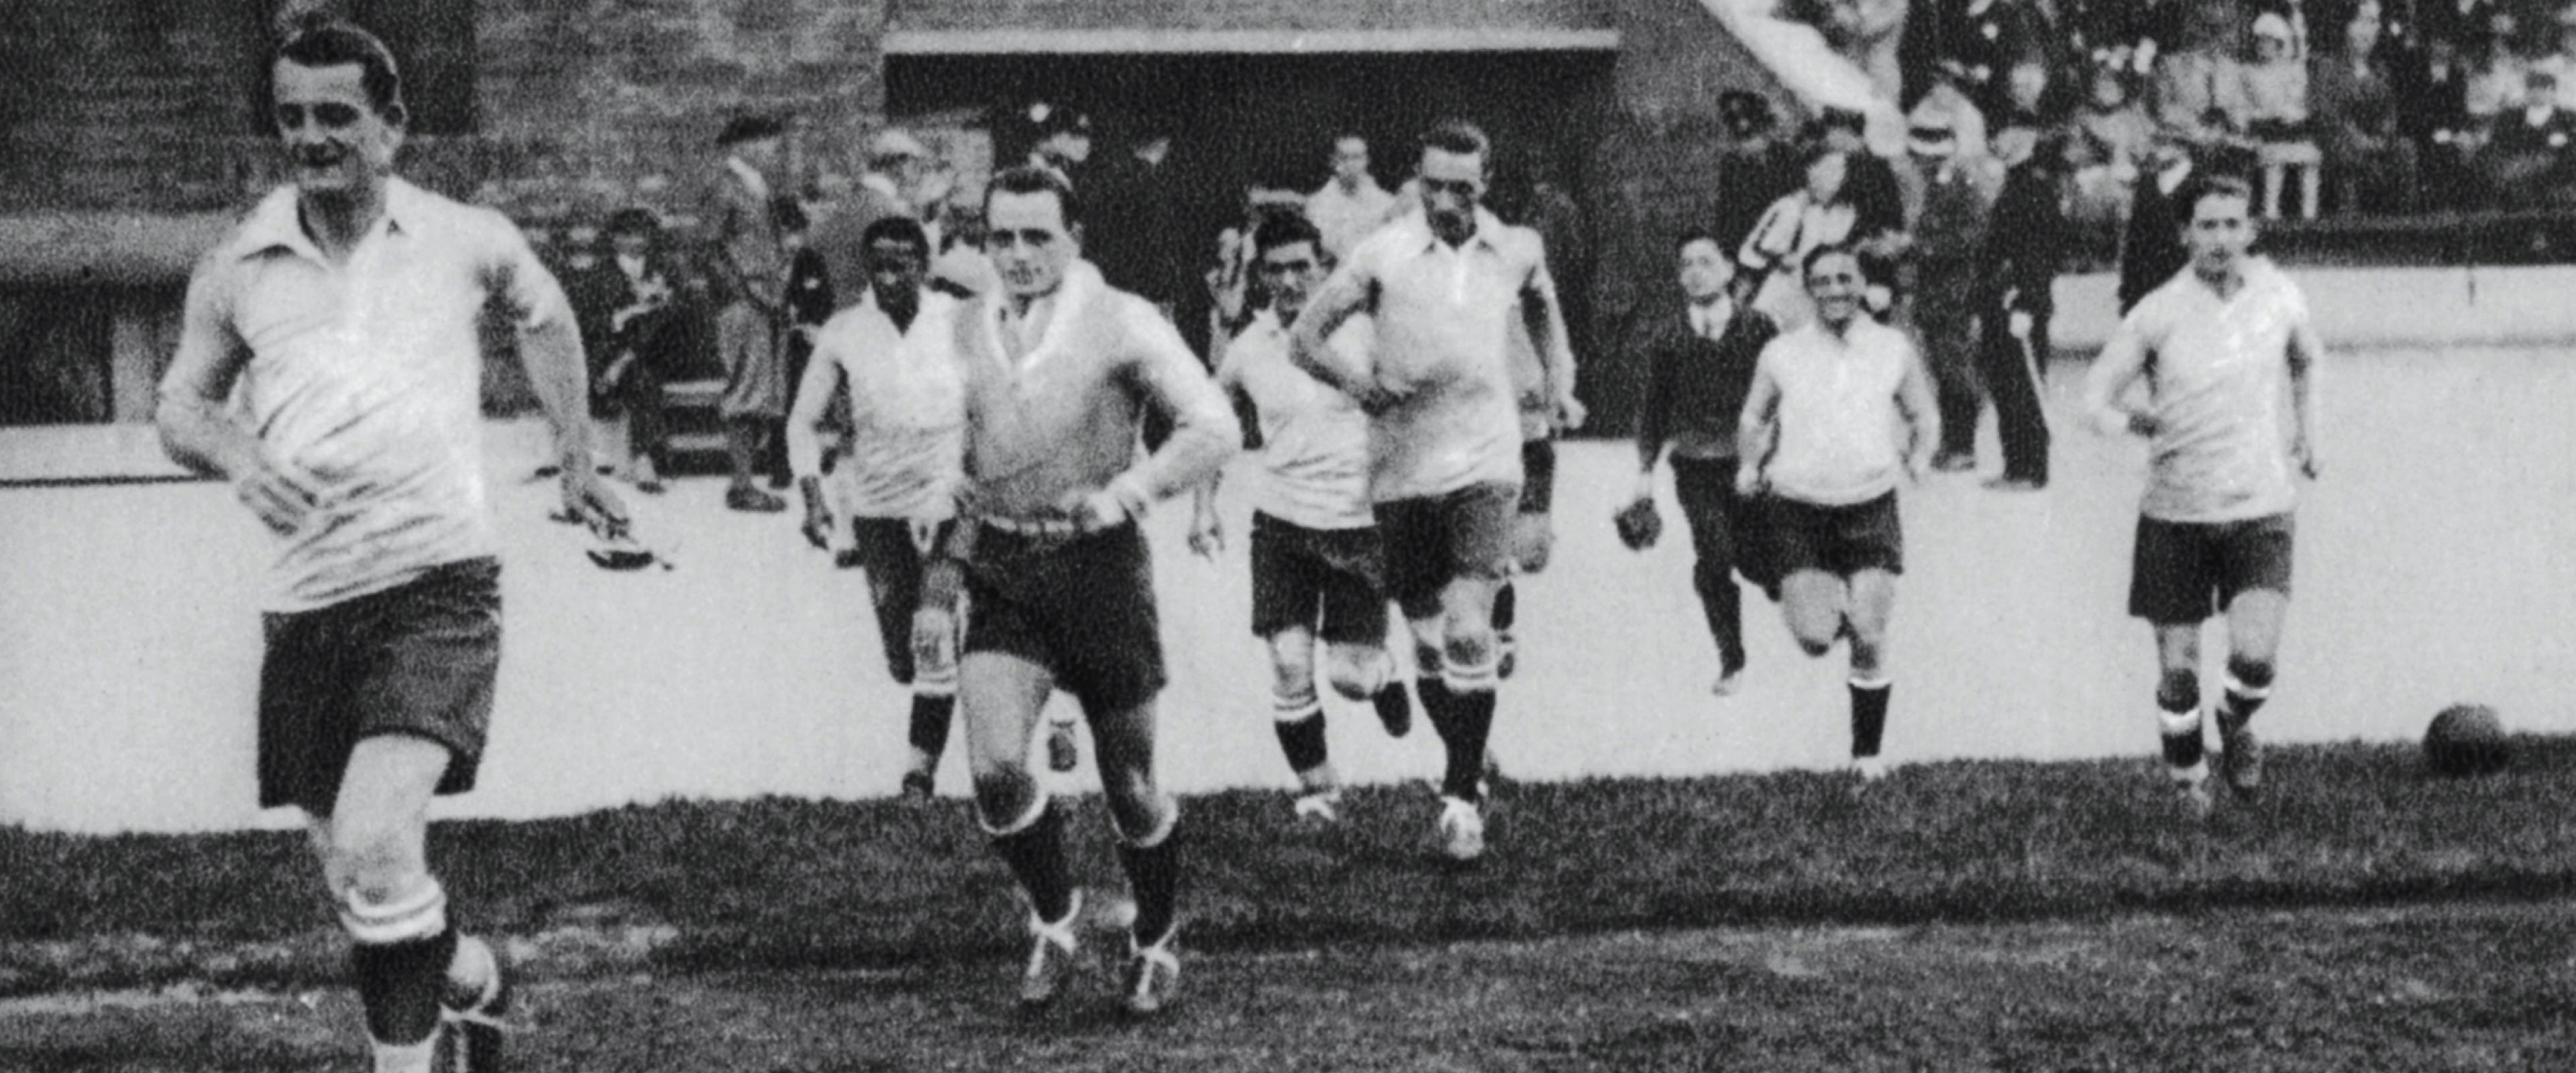 In Amsterdam In 1928 The Football Masters Were Uruguayan Olympic News